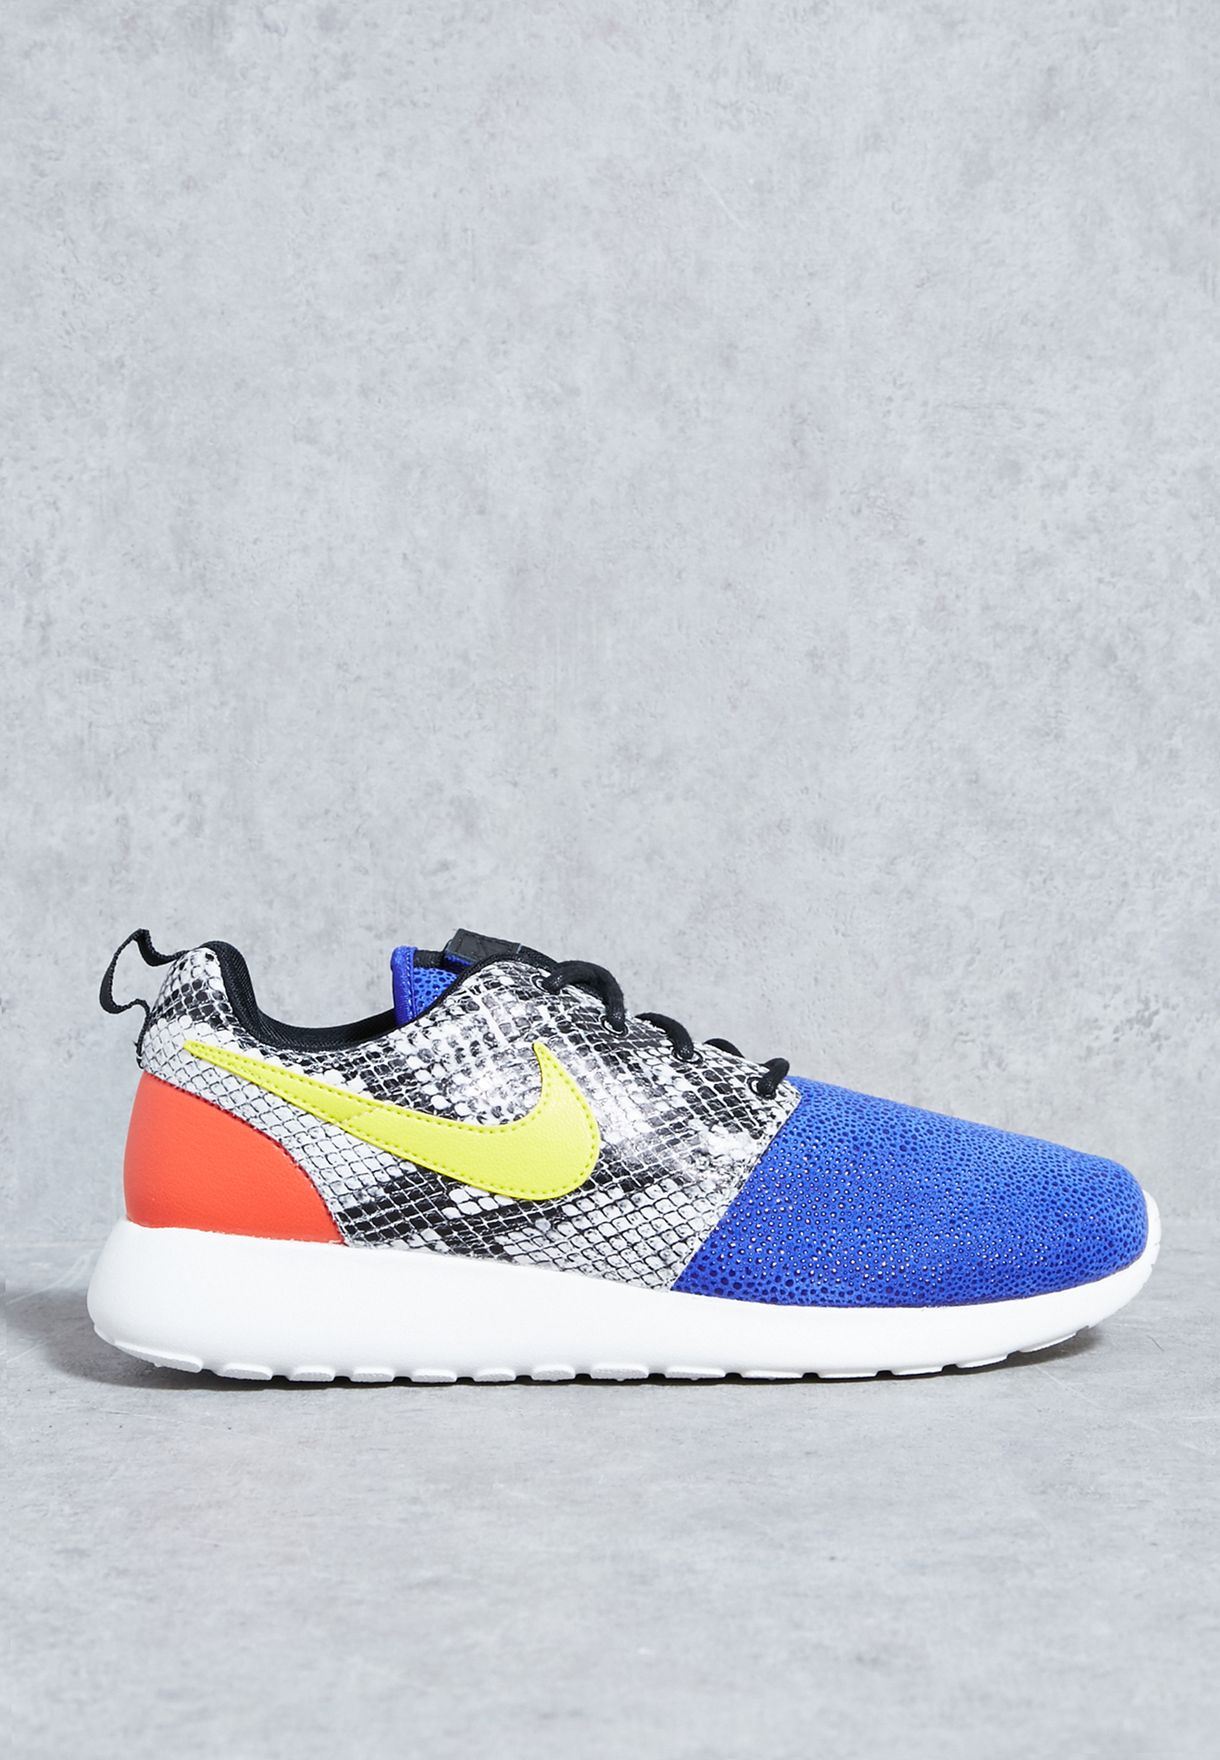 new styles b8a81 3b6e0 Shop Nike multicolor Roshe One LX 881202-400 for Women in Kuwait ...